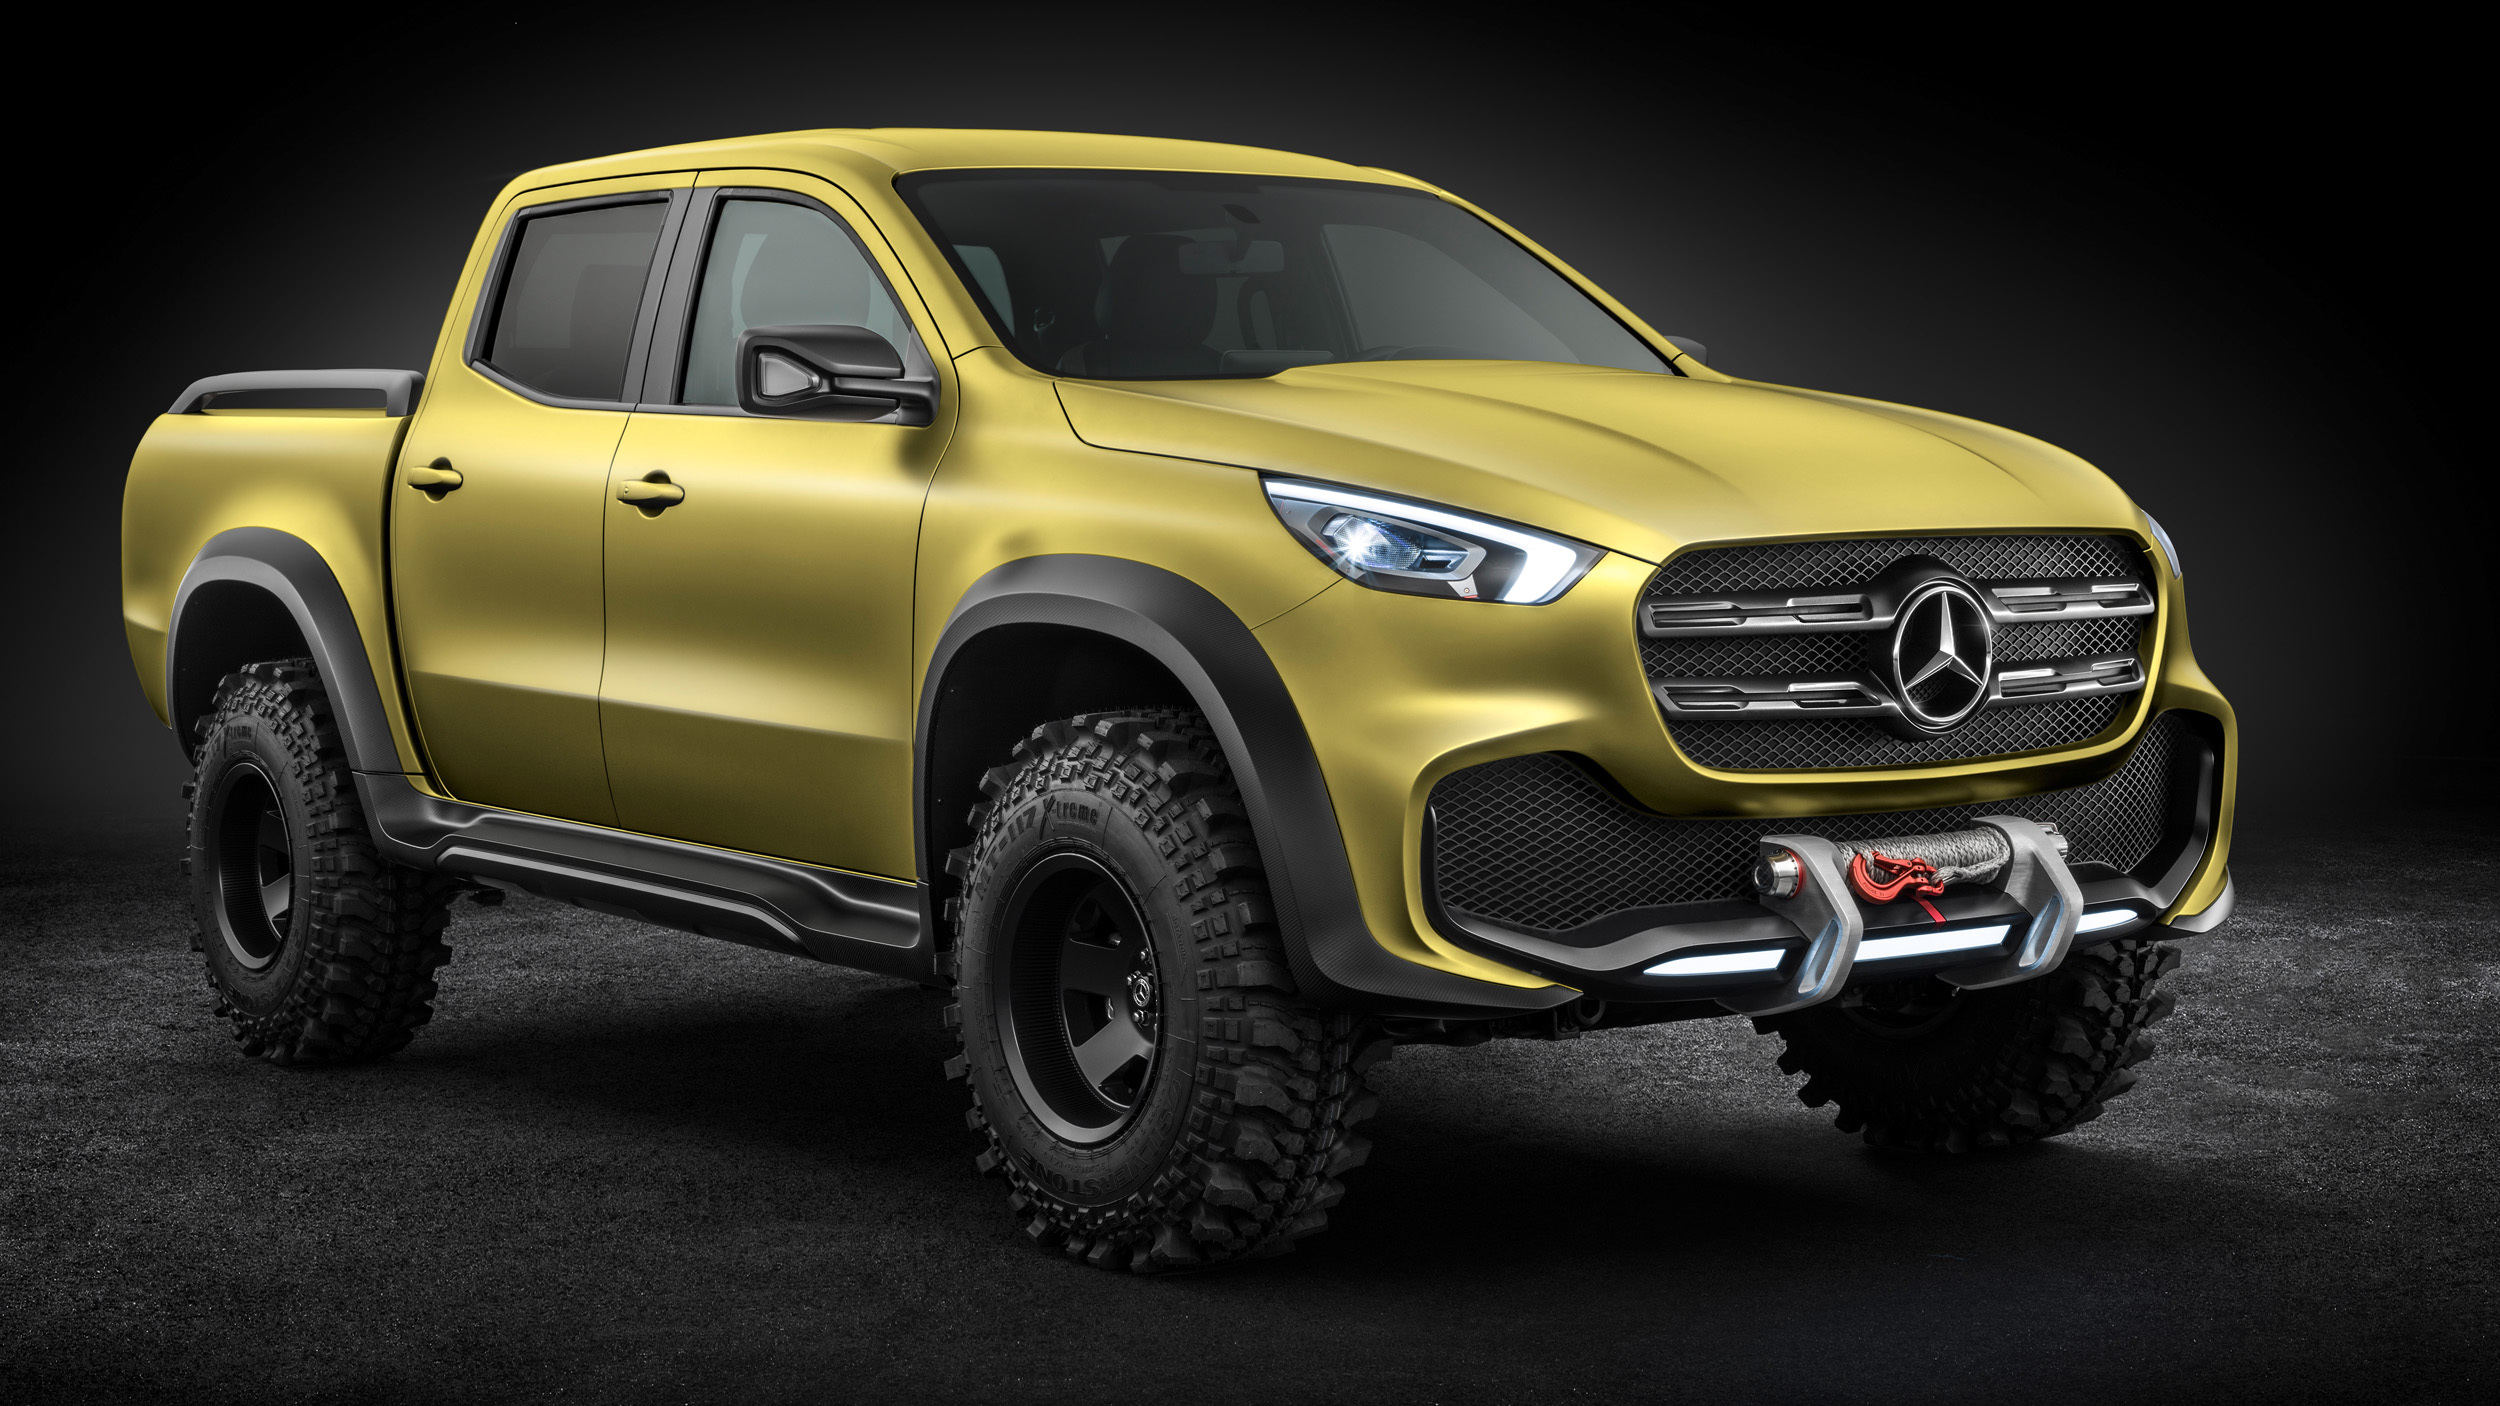 Take Over An Auto Lease >> MERCEDES-BENZ X-CLASS CONCEPT - Solution Auto Lease